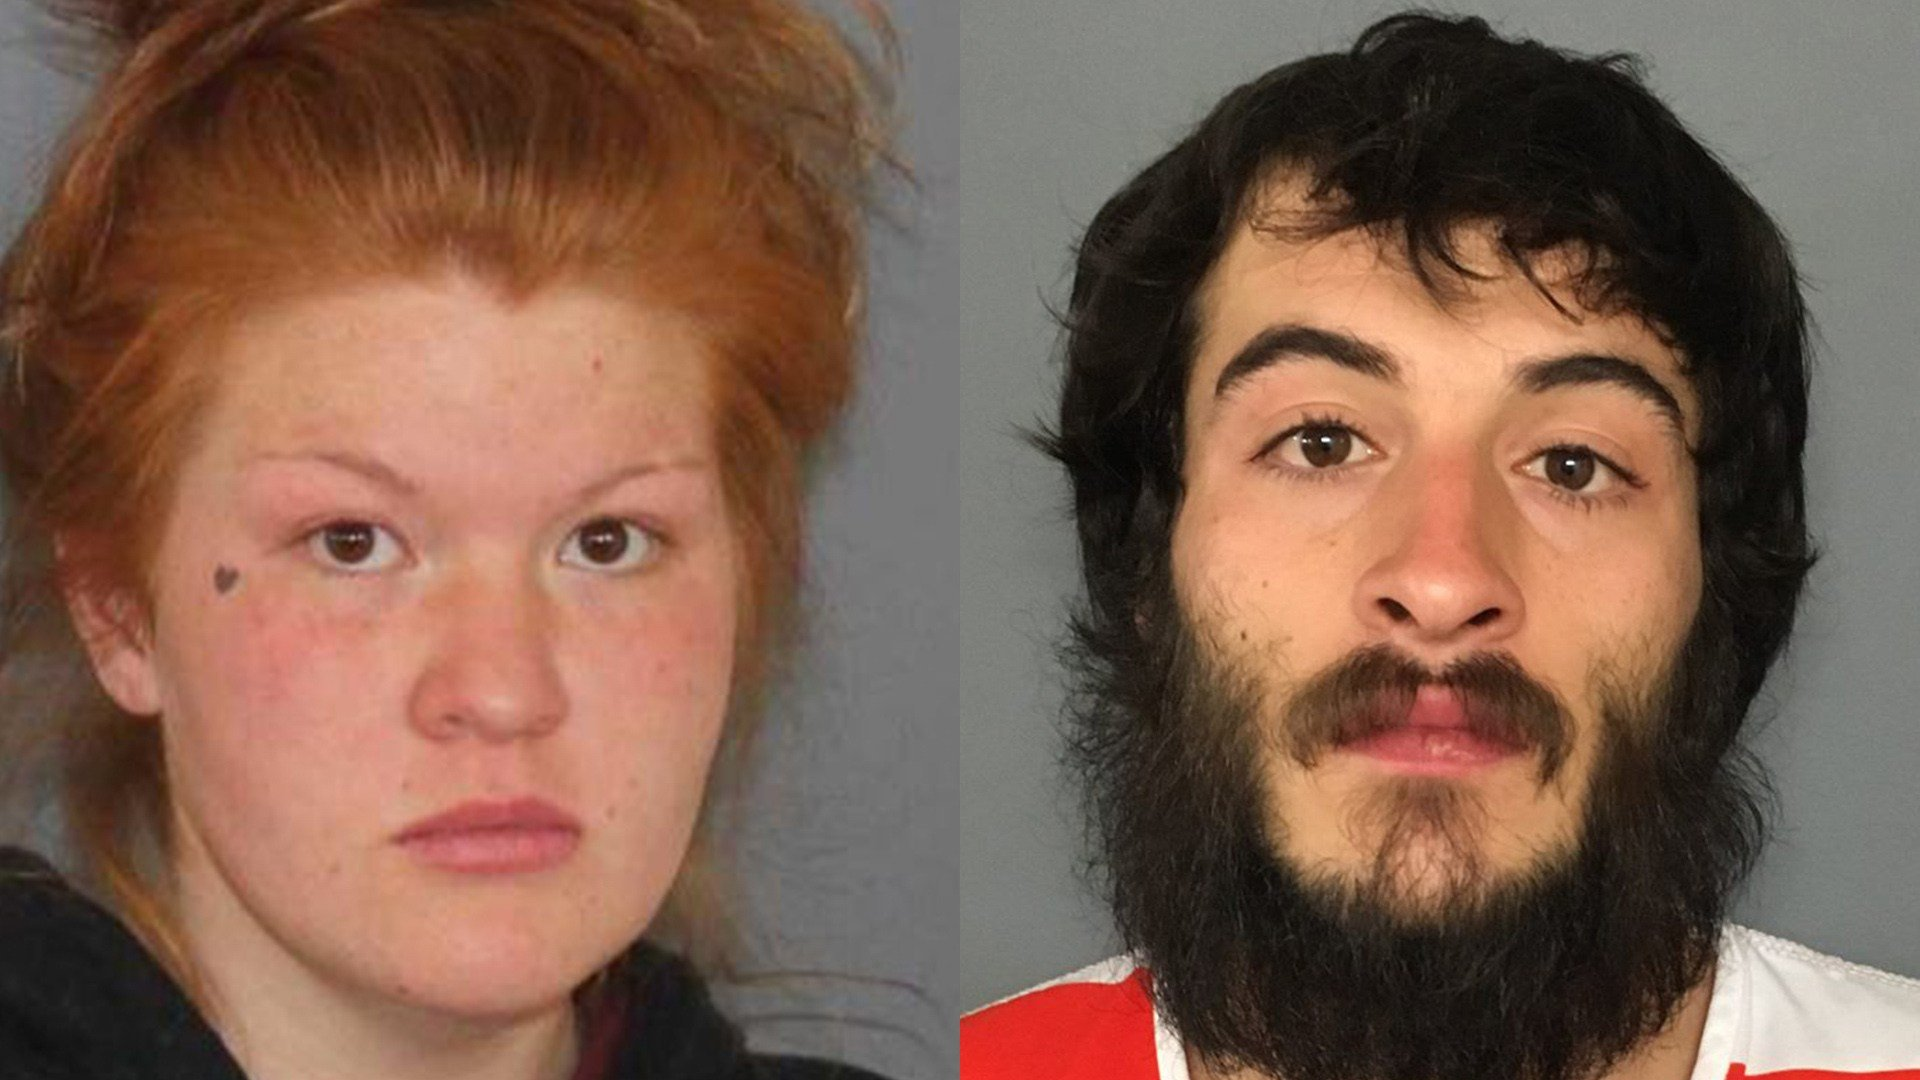 26-year-old Lisa Marie Aragon and 26-year-old Joseph Wade Lindt